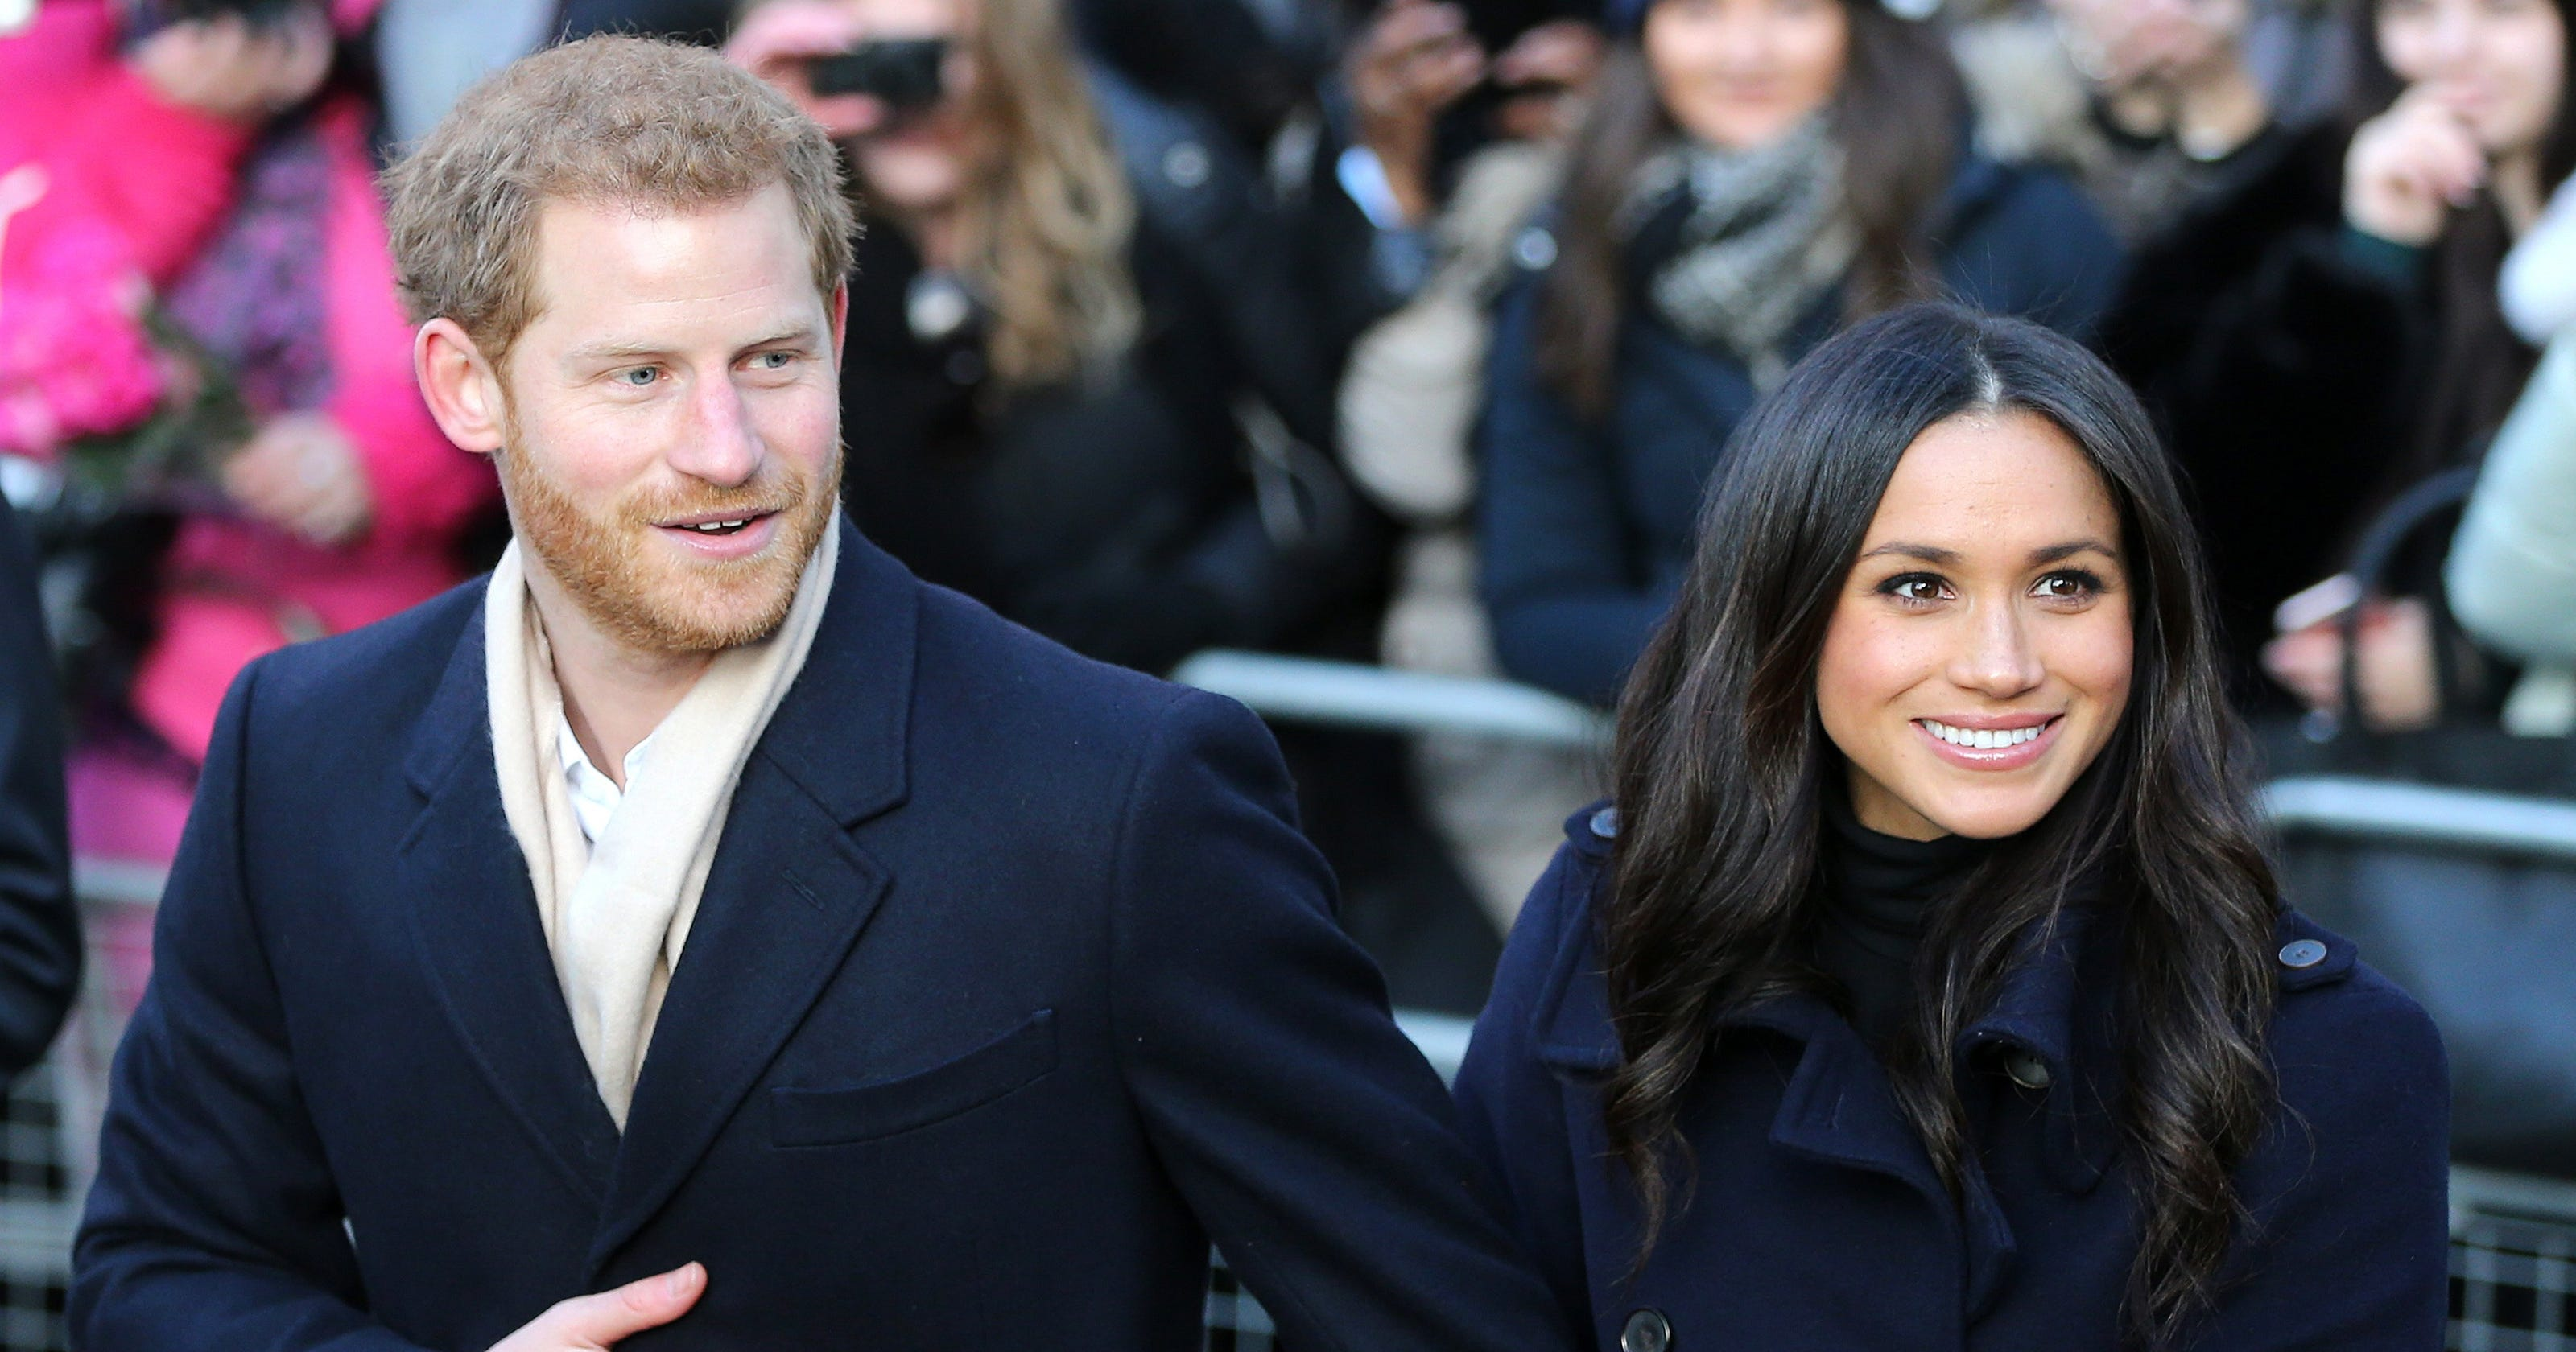 Royal Wedding How Meghan Markle Will Embrace Change Traditions